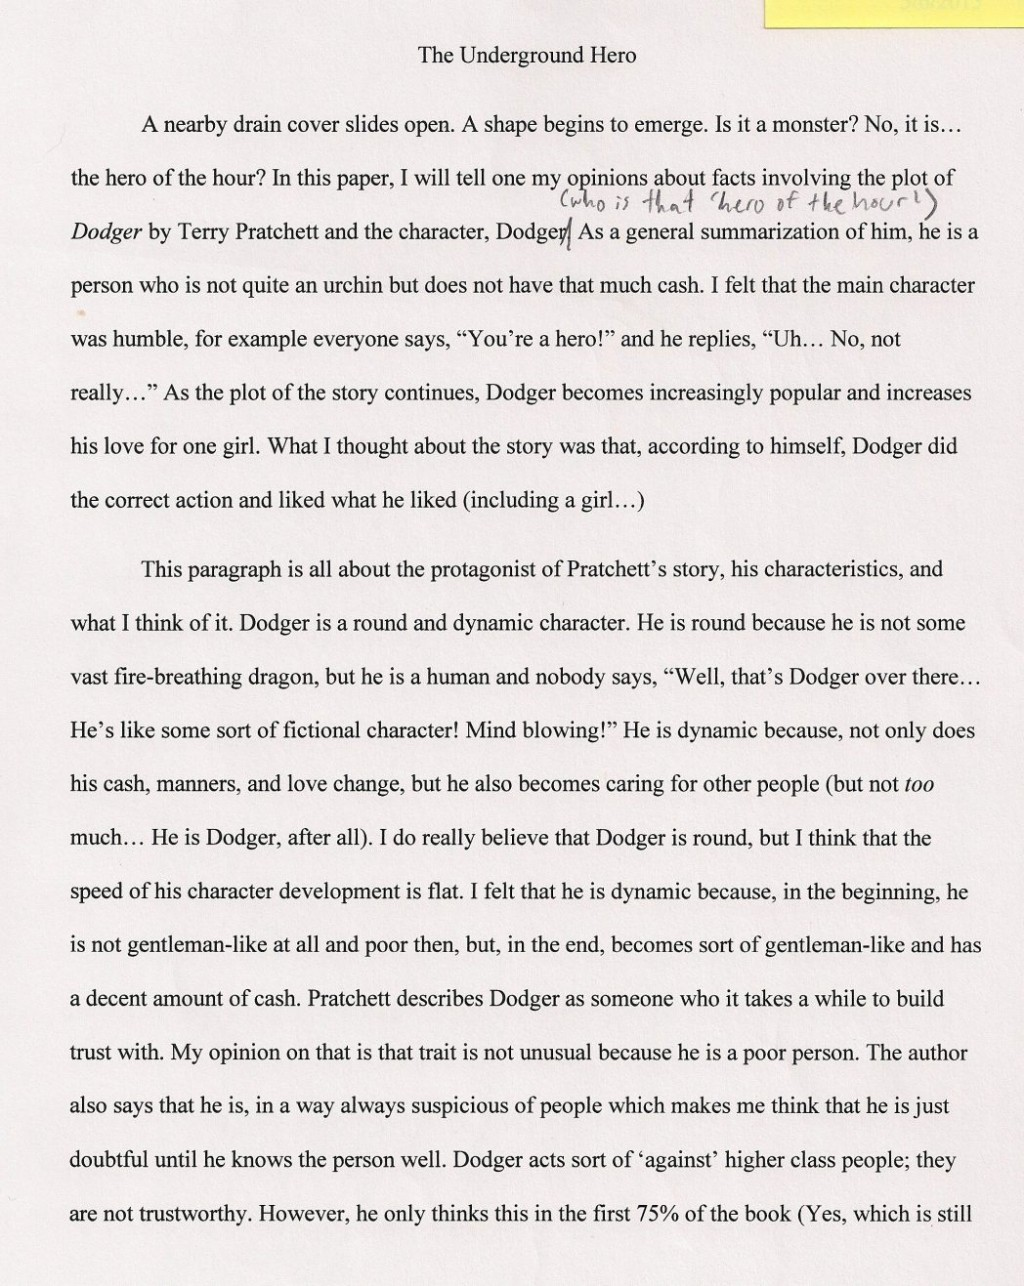 018 Essay Example Satire Essays Global Warming On Heroes My Hero How To Write An Argumentative The Undergro Persuasive About Study Mode Good Paper Fearsome Satirical Topics For High School Examples Gun Control Large